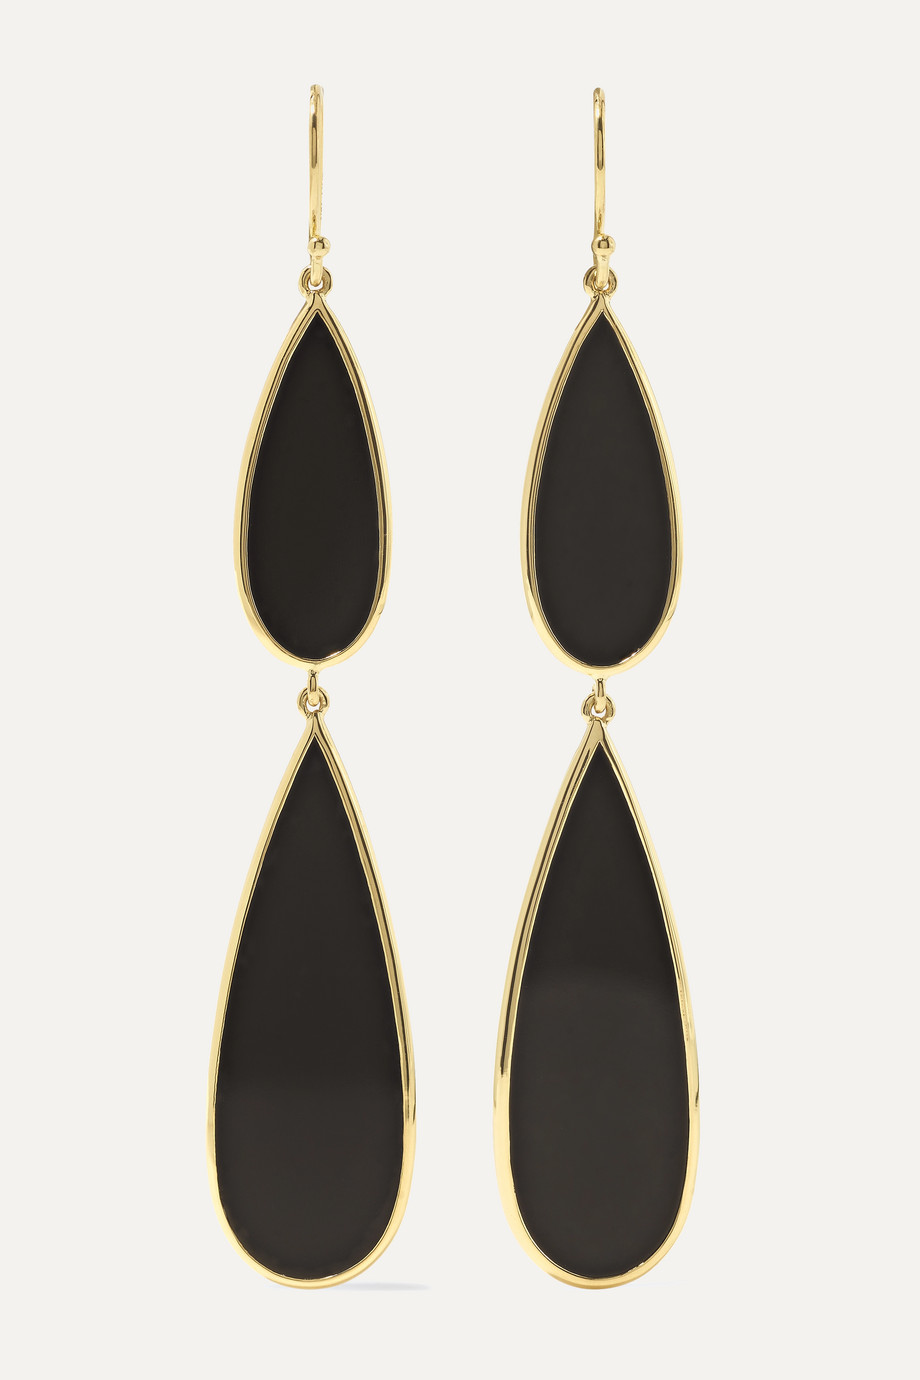 Ippolita Polished Rock Candy 18-karat gold onyx earrings